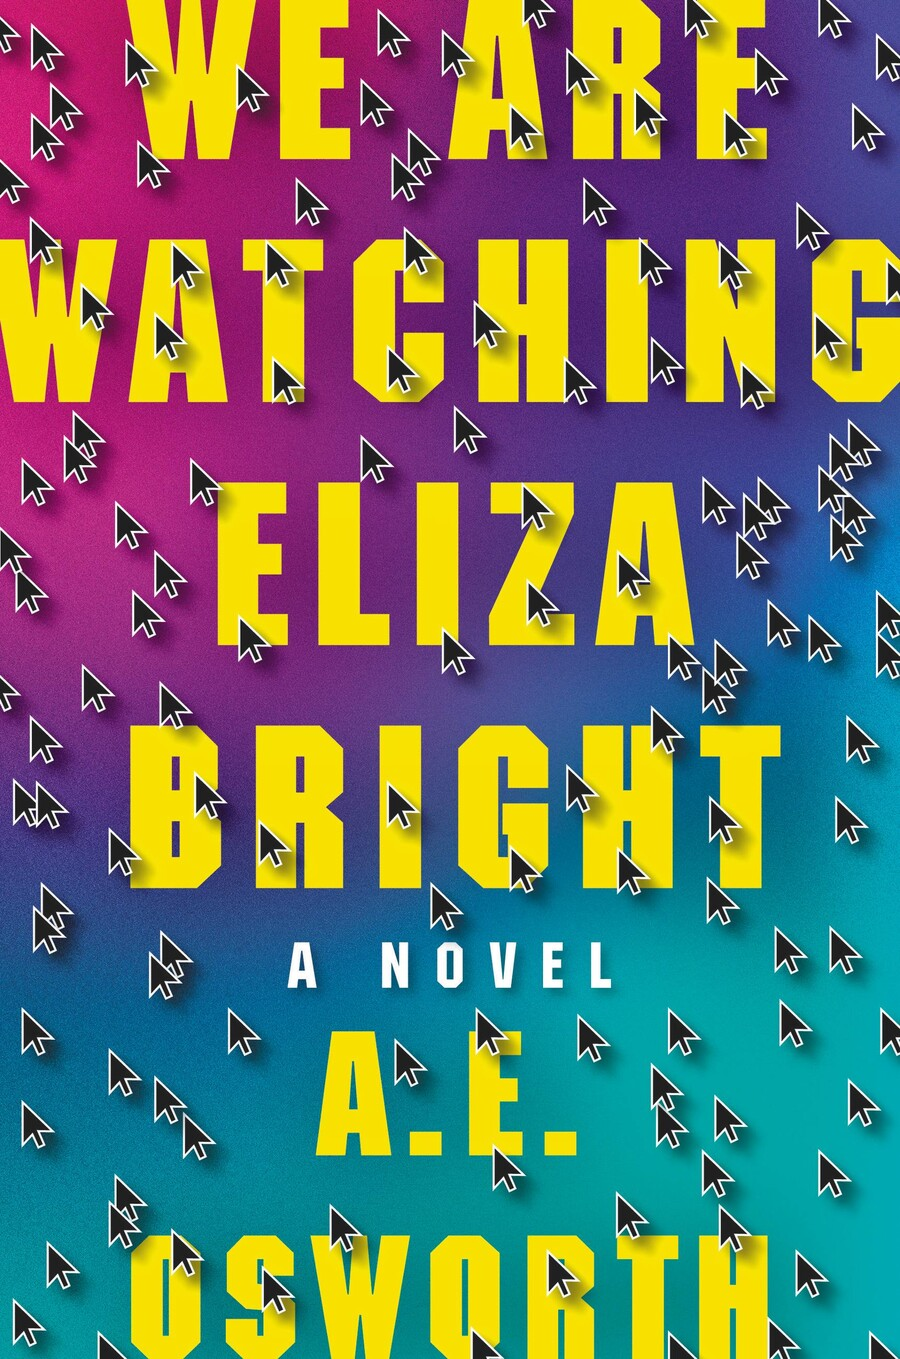 We Are Watching Eliza Bright is a purple and turquoise book cover completely covered in electronic mouse click symbols